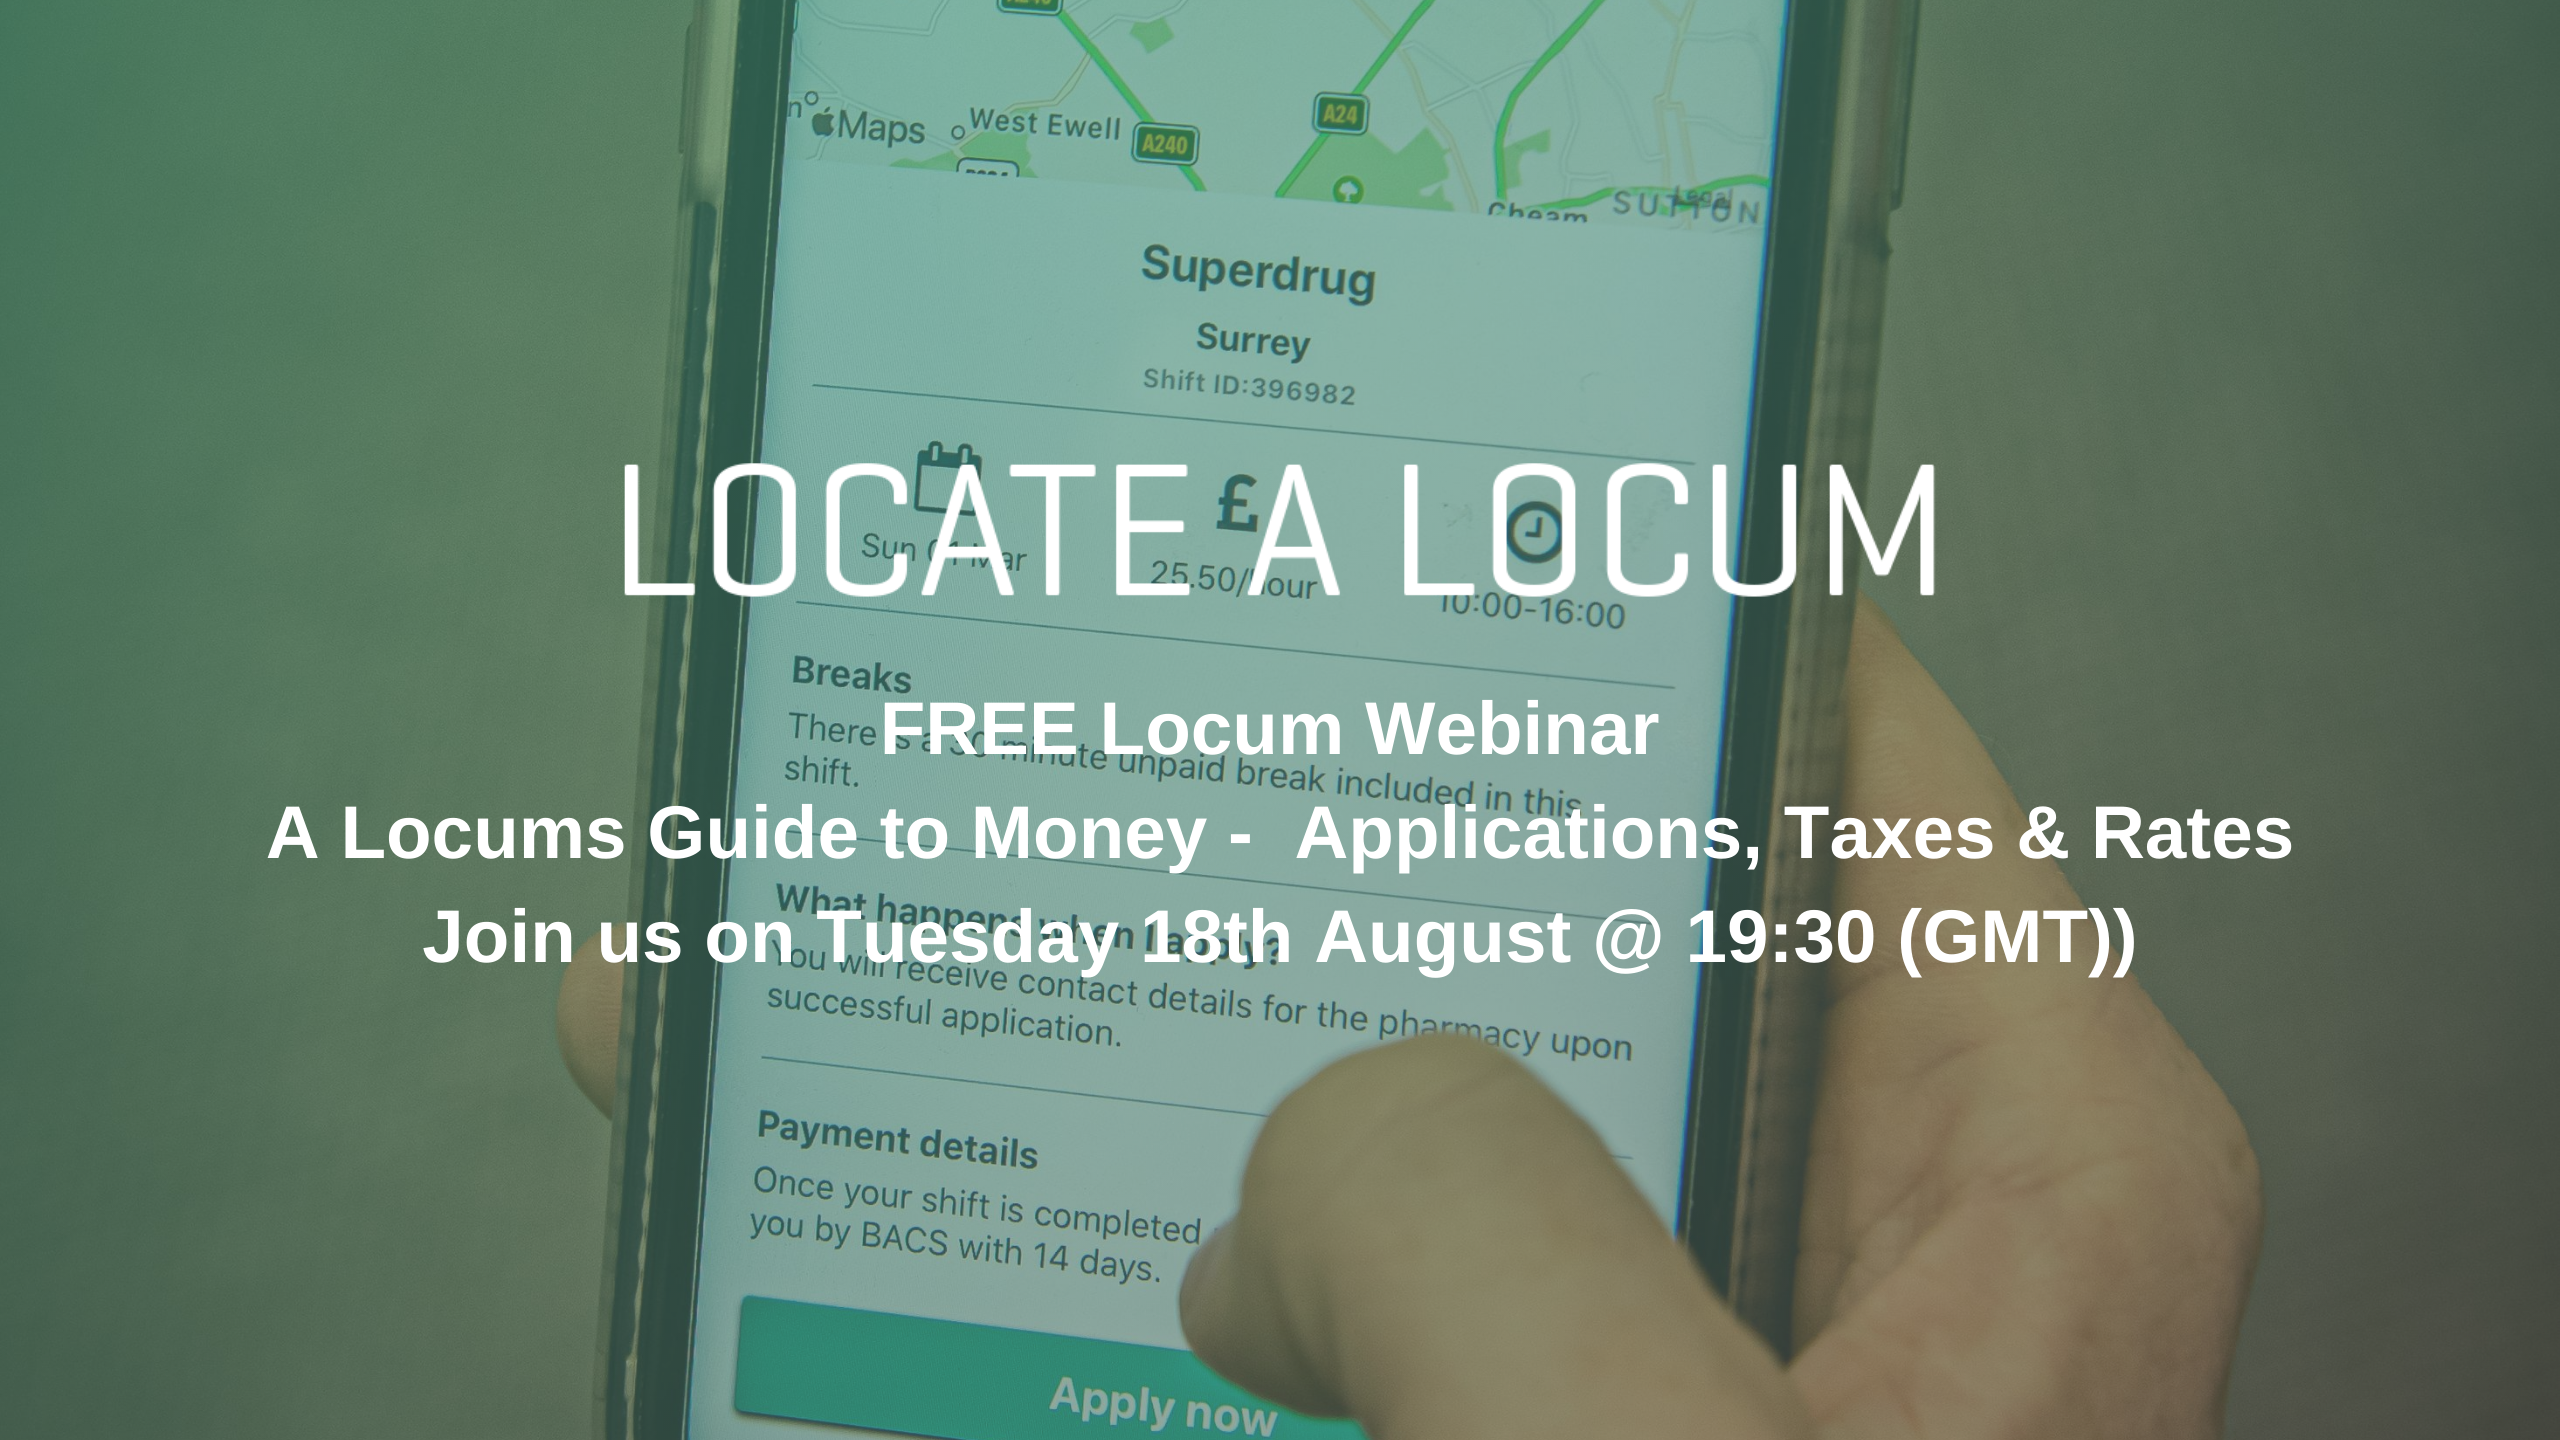 locum-webinar-a-locums-guide-to-money-applications-taxes-and-rates